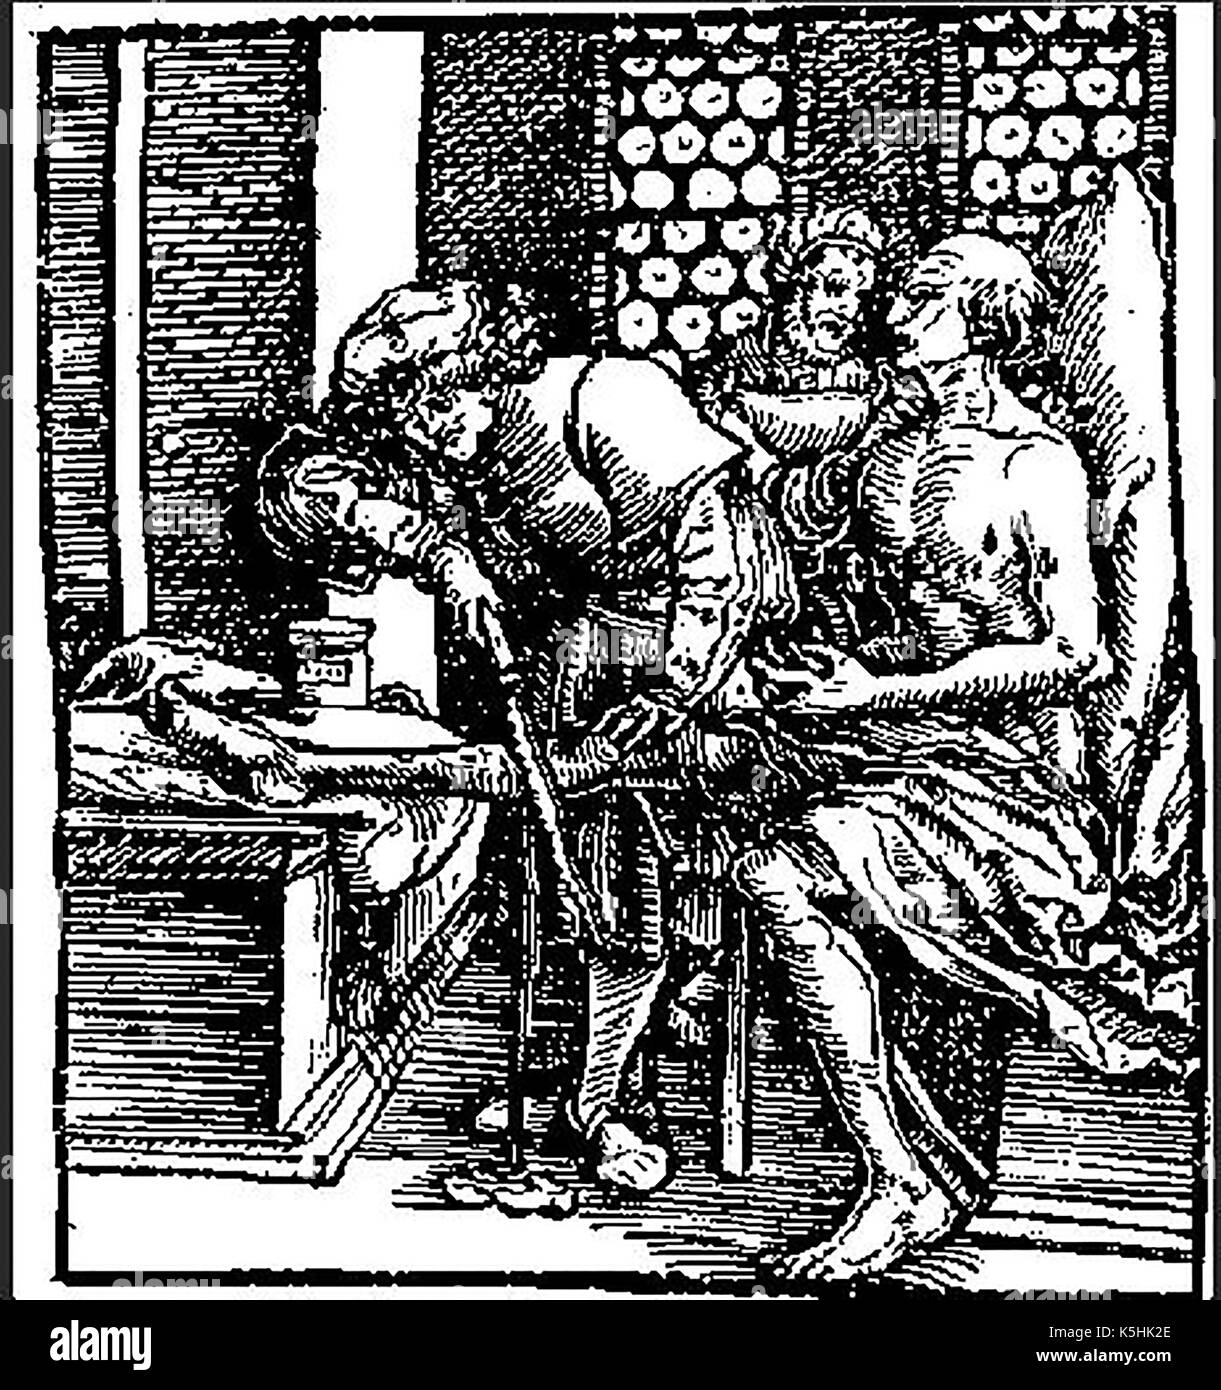 A medieval woodcut showing the amputation of a man's leg using a tourniquet and a saw - Stock Image